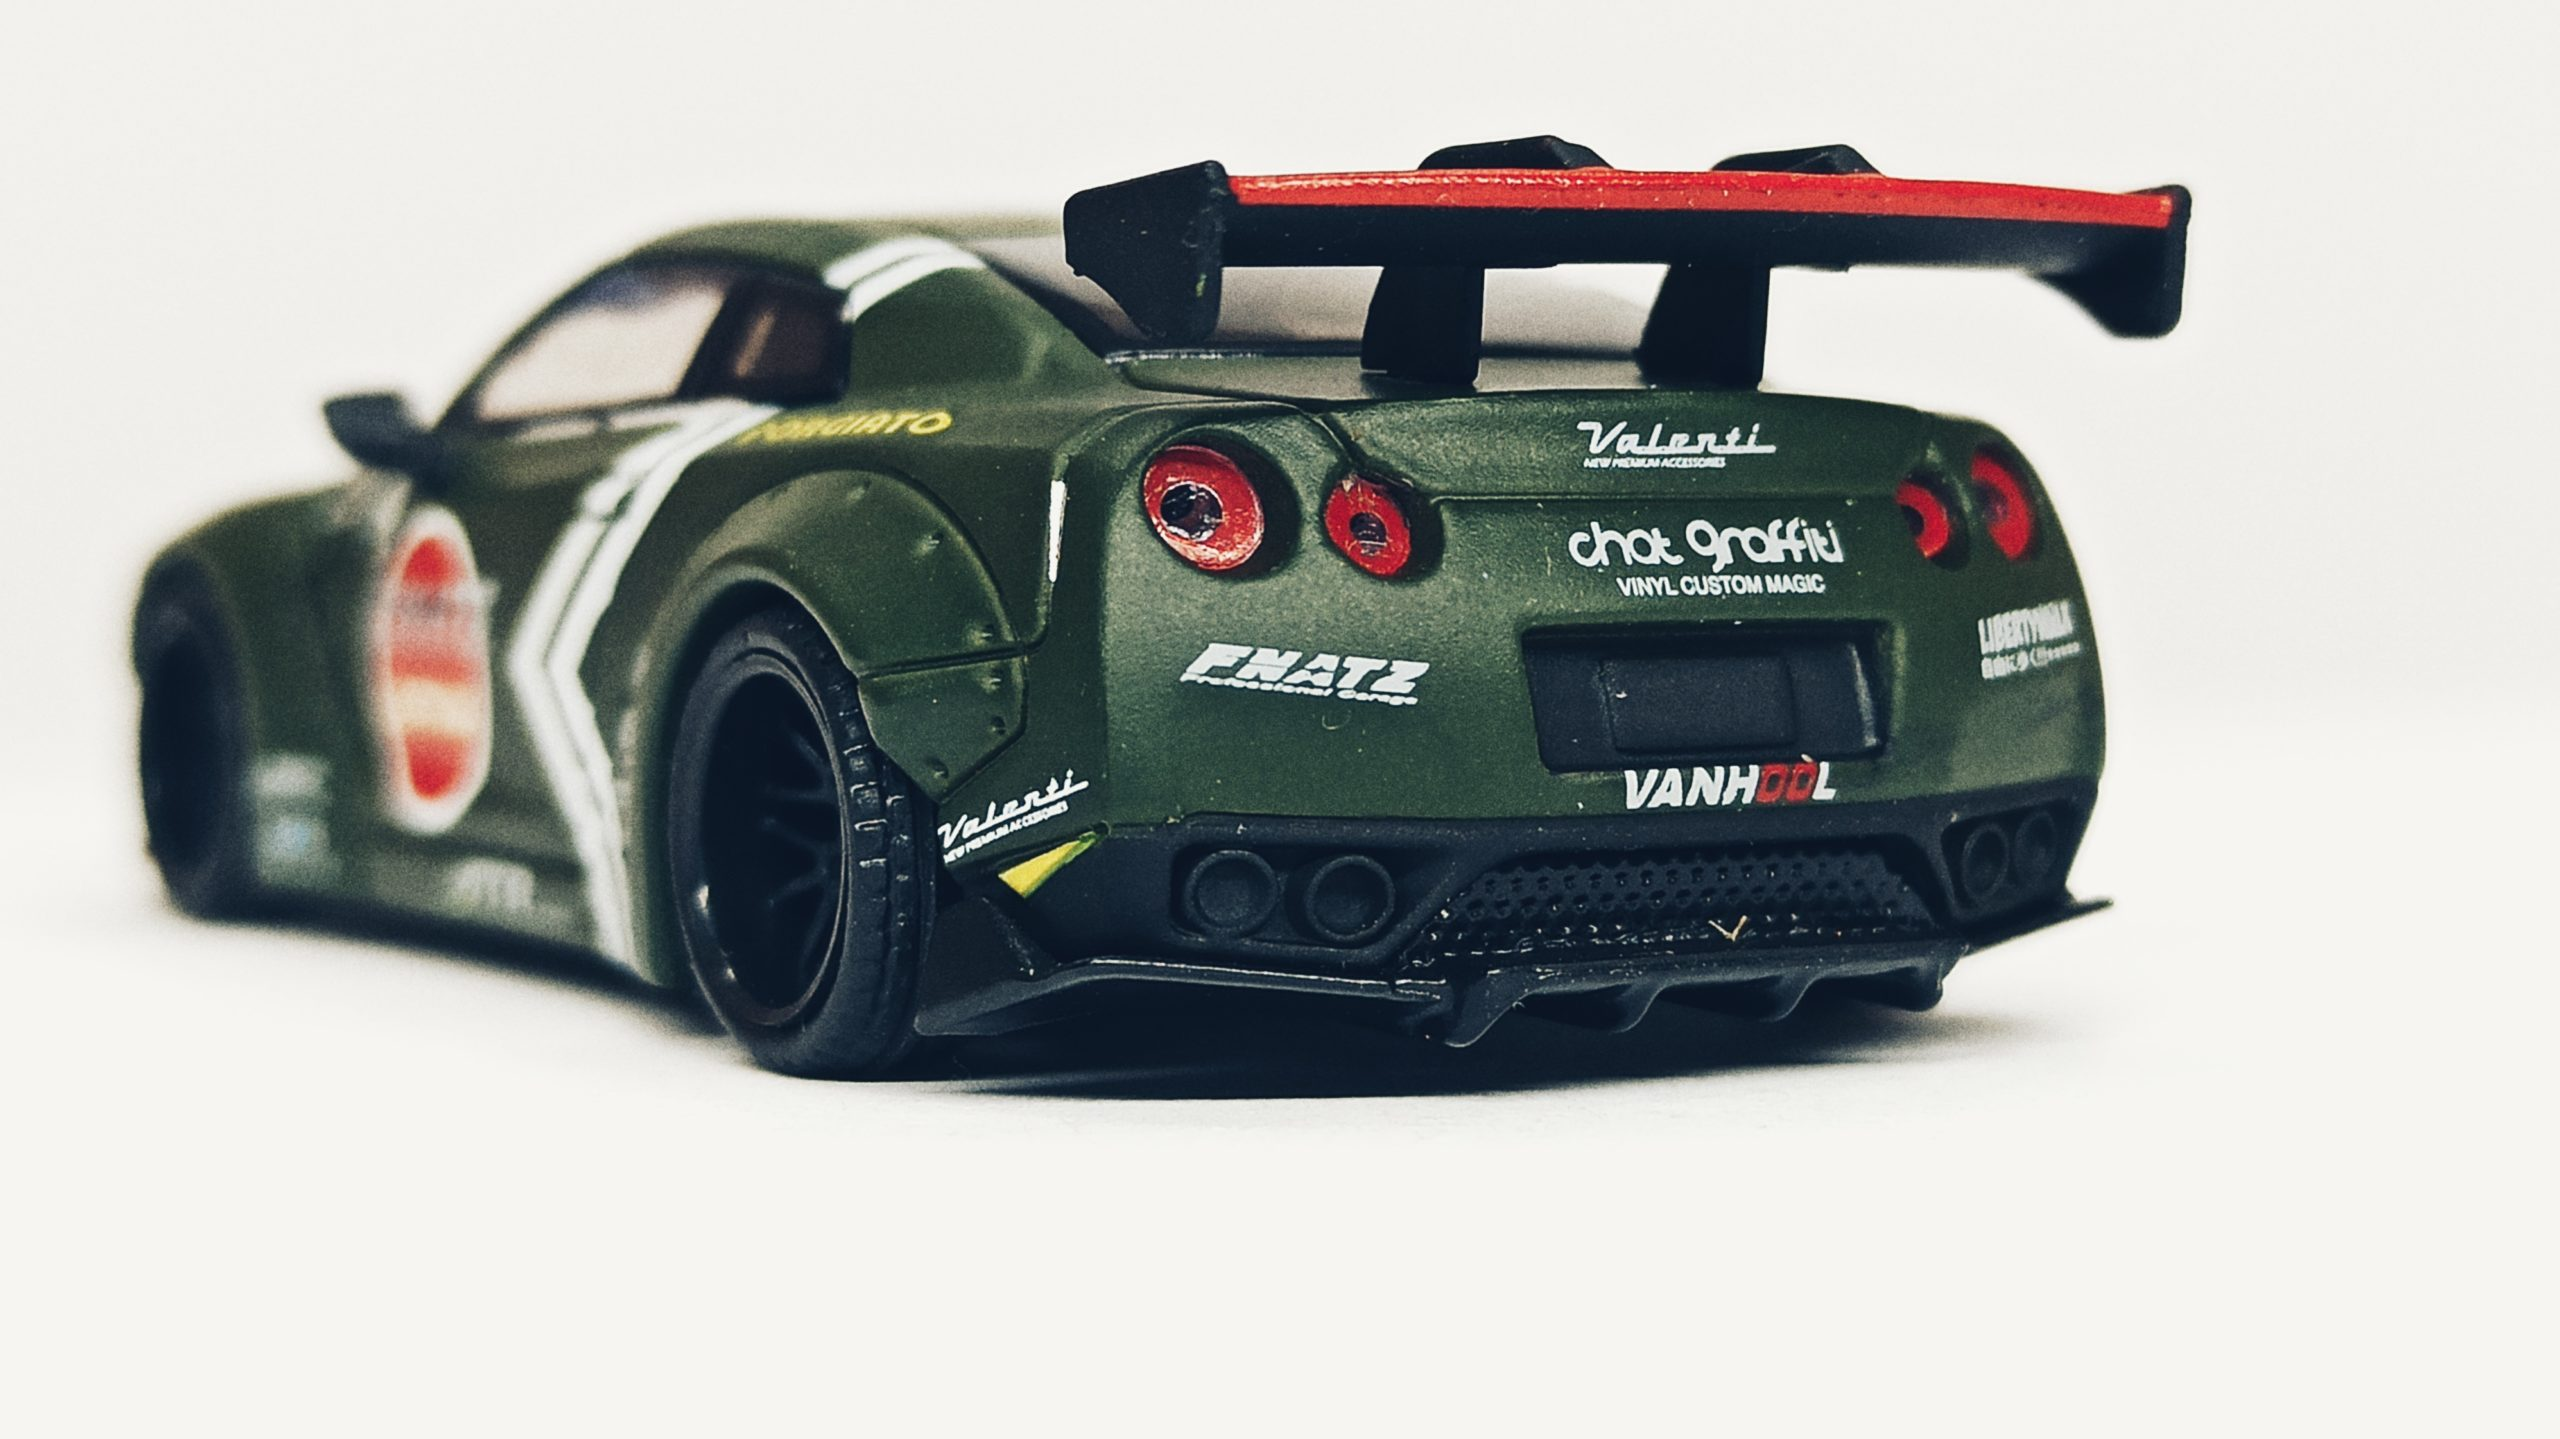 Mini GT Nissan GT-R (R35) (MGT00007-R) 2018 Liberty Walk LB★Works Type 1 Rear Wing ver 1 Zero Fighter Special (RHD) back angle